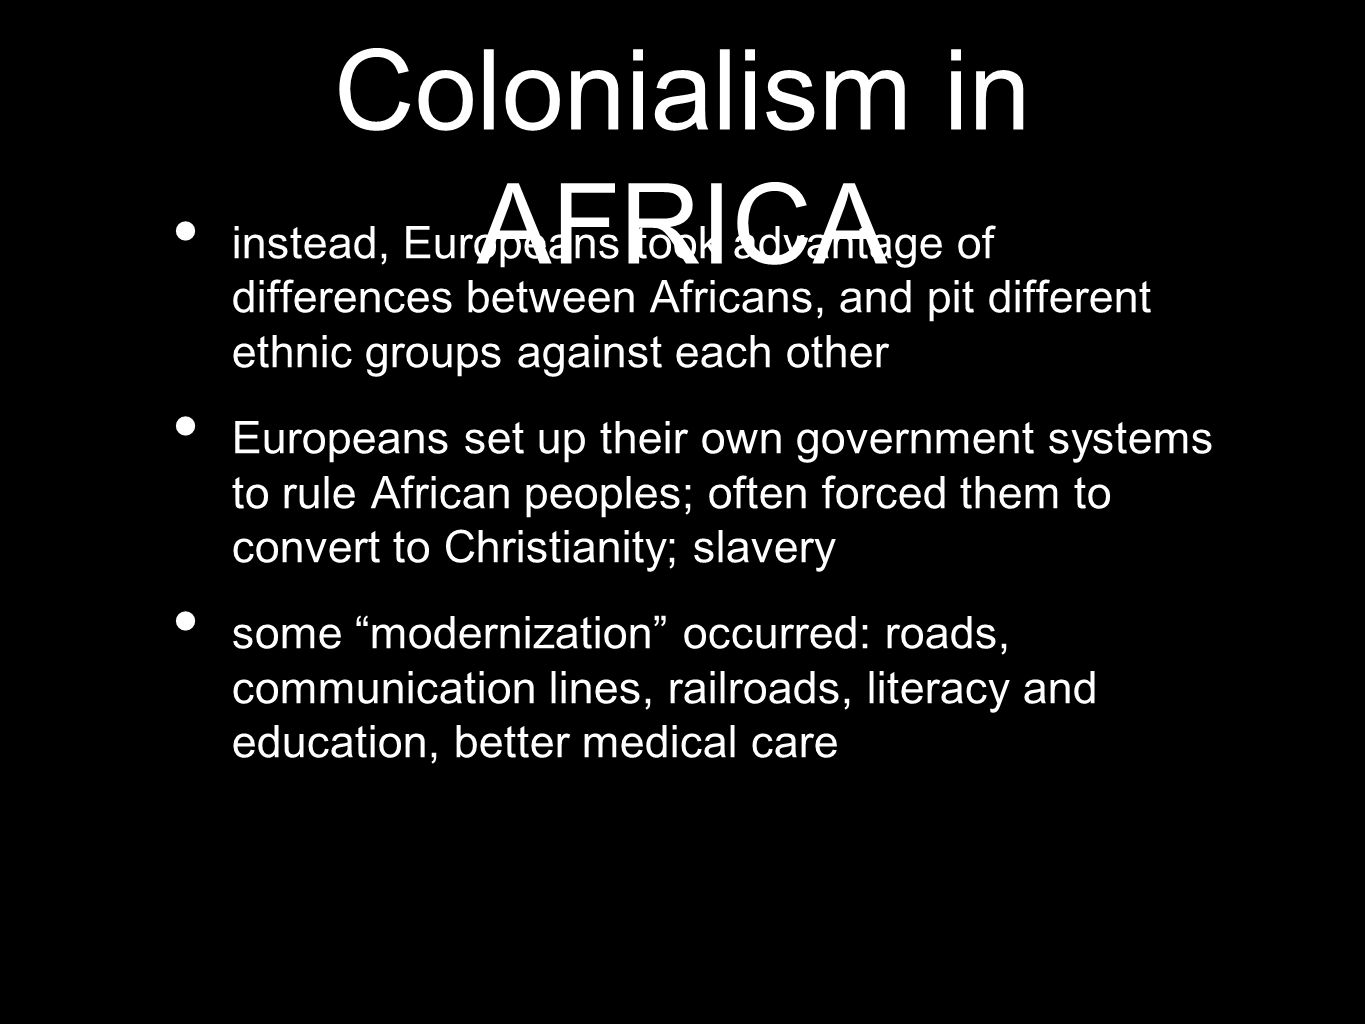 Colonialism in AFRICA instead, Europeans took advantage of differences between Africans, and pit different ethnic groups against each other Europeans set up their own government systems to rule African peoples; often forced them to convert to Christianity; slavery some modernization occurred: roads, communication lines, railroads, literacy and education, better medical care